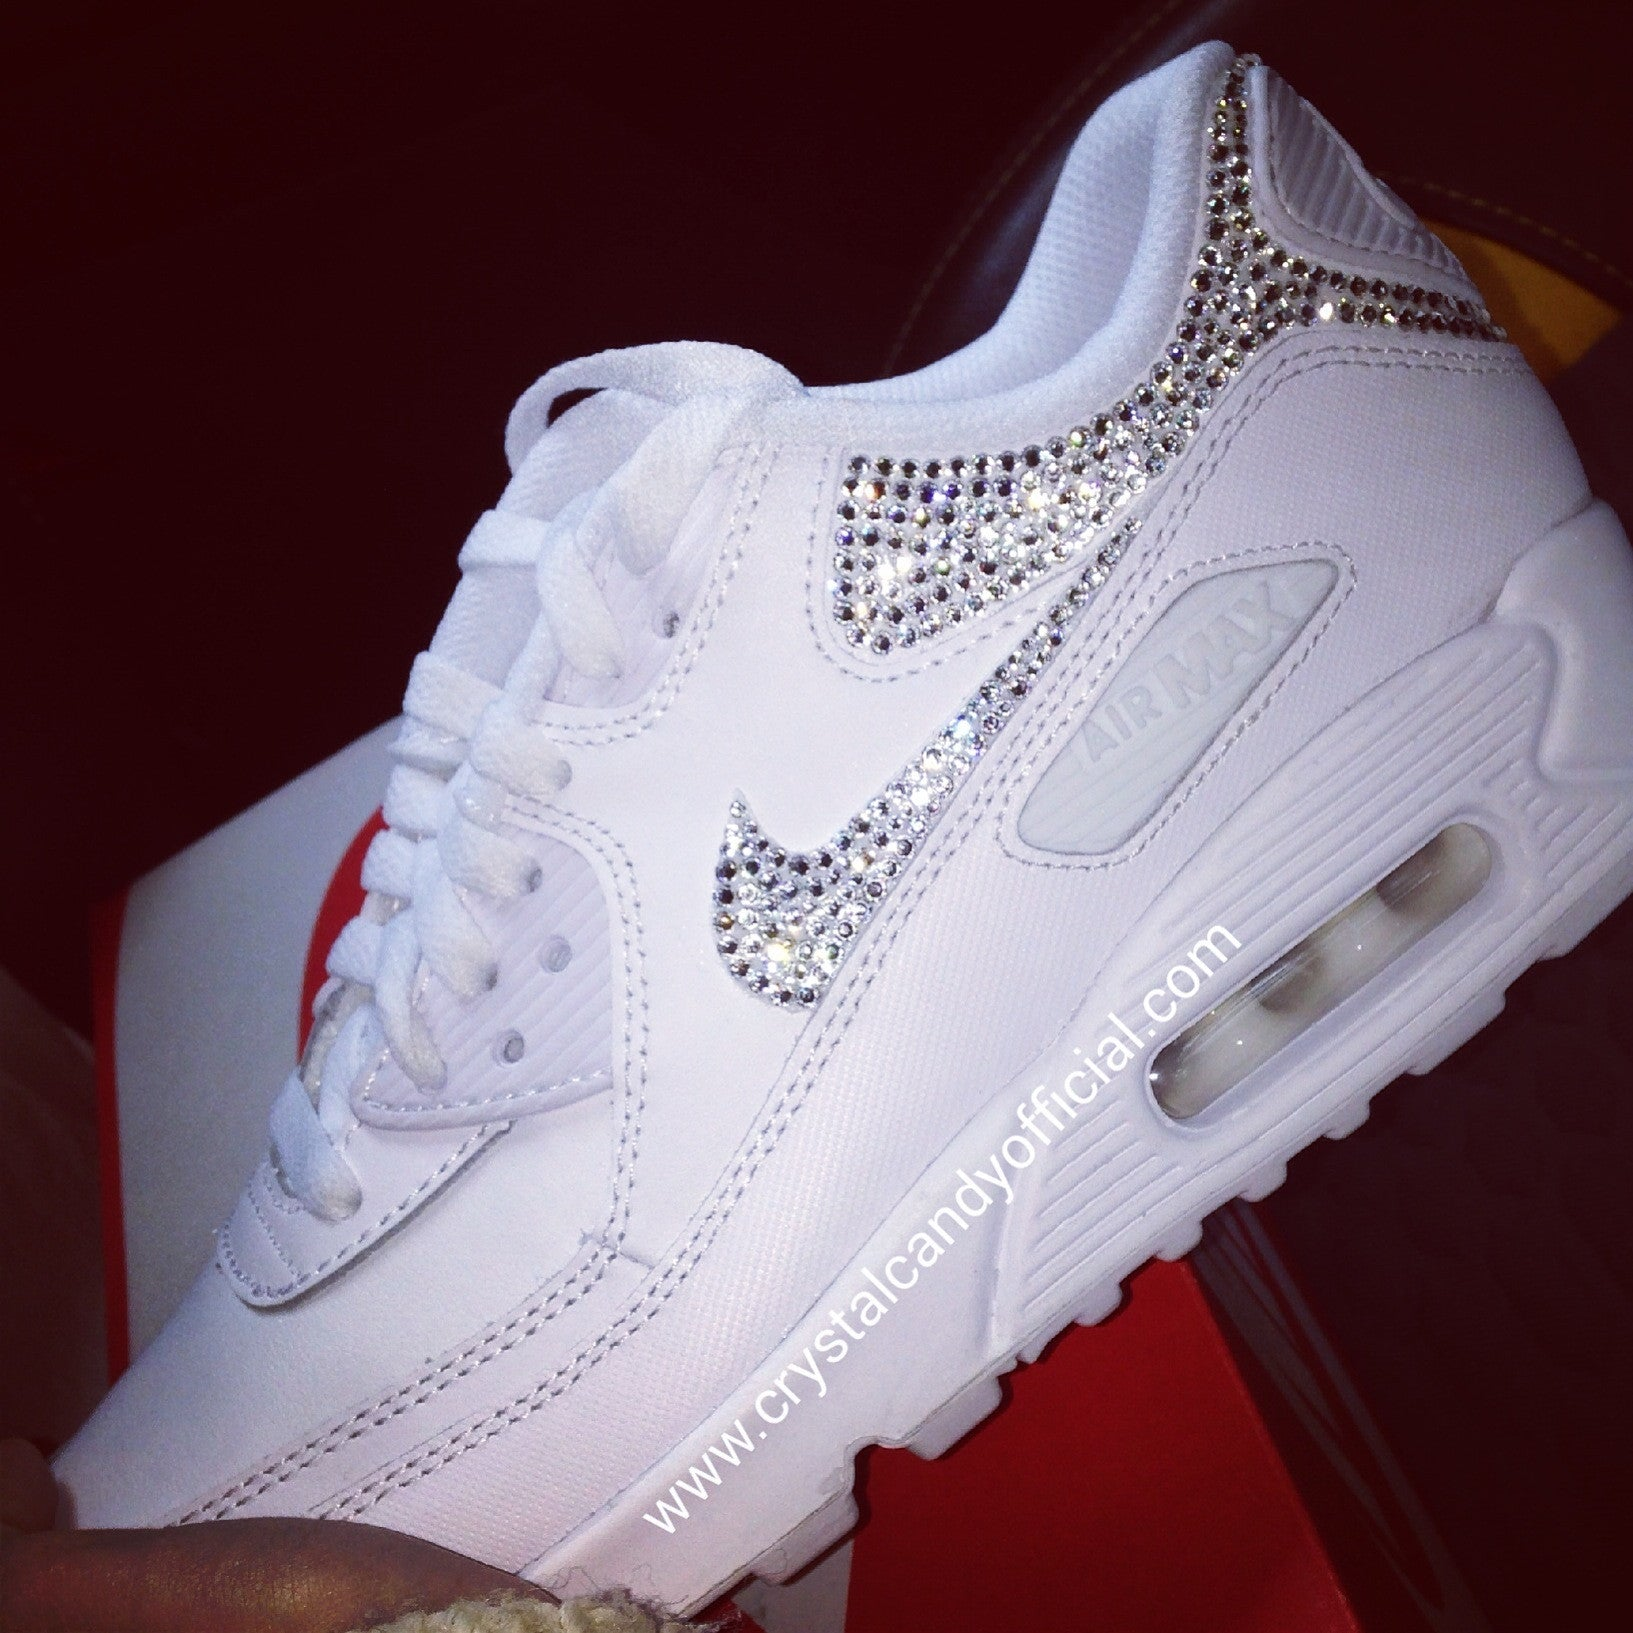 2597e51092f7f6 Crystal Nike Air Max 90 s in White (backs   ticks) - Crystal Candy ...